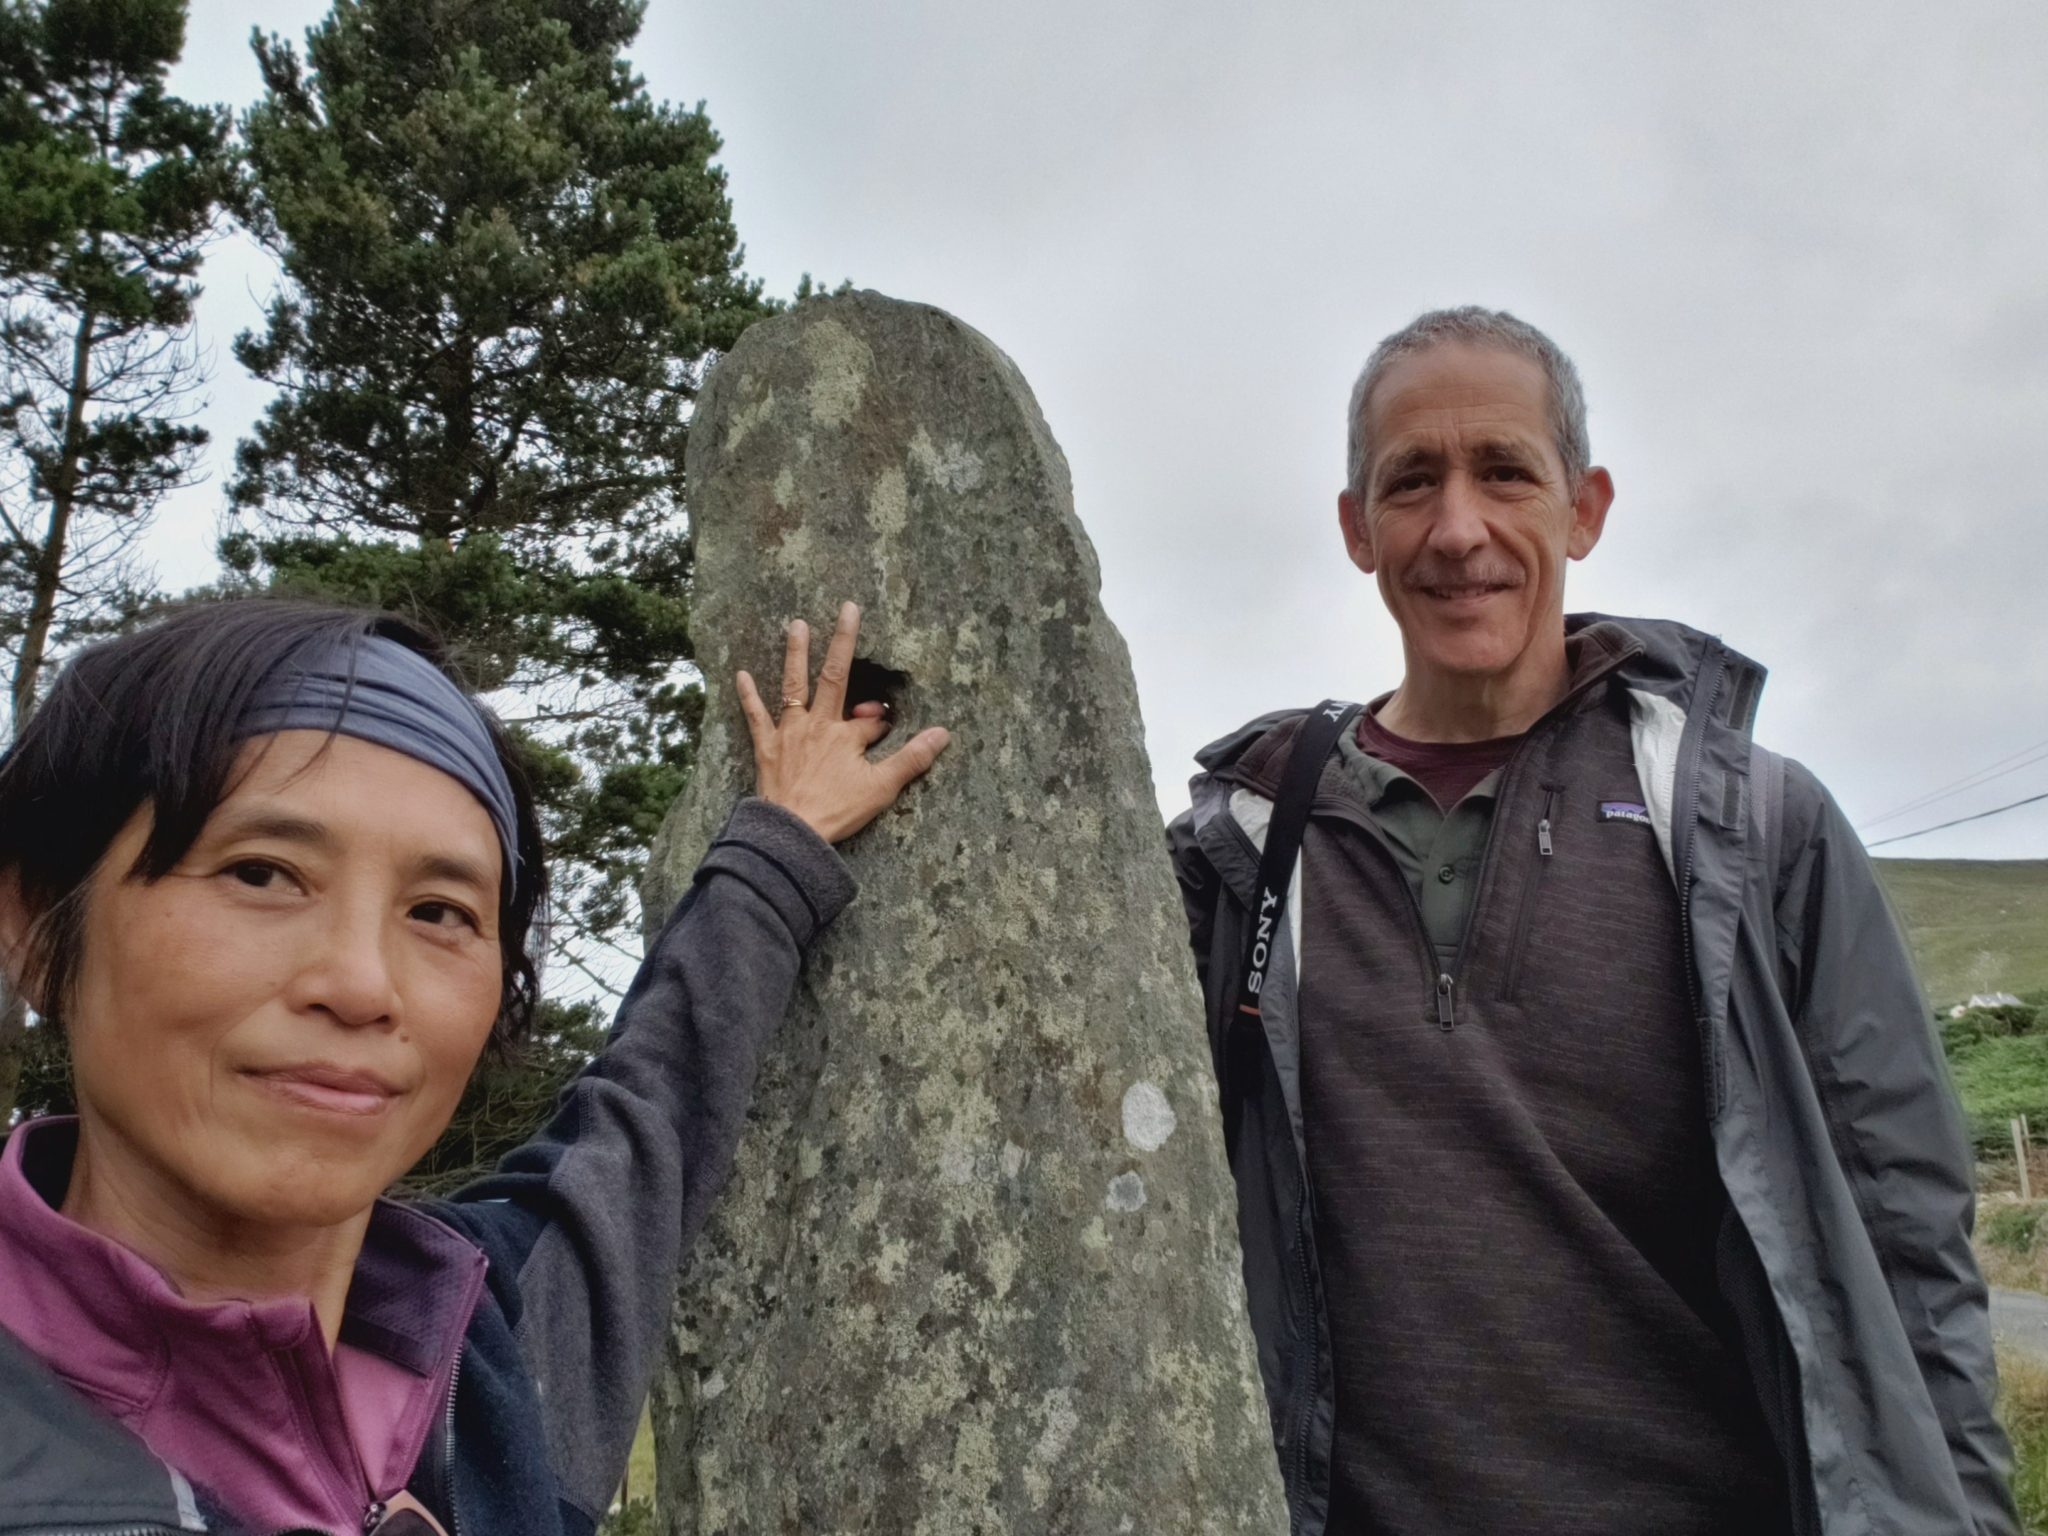 Two cyclists at one of the Megalithic standing stones on Turas Cholmcille